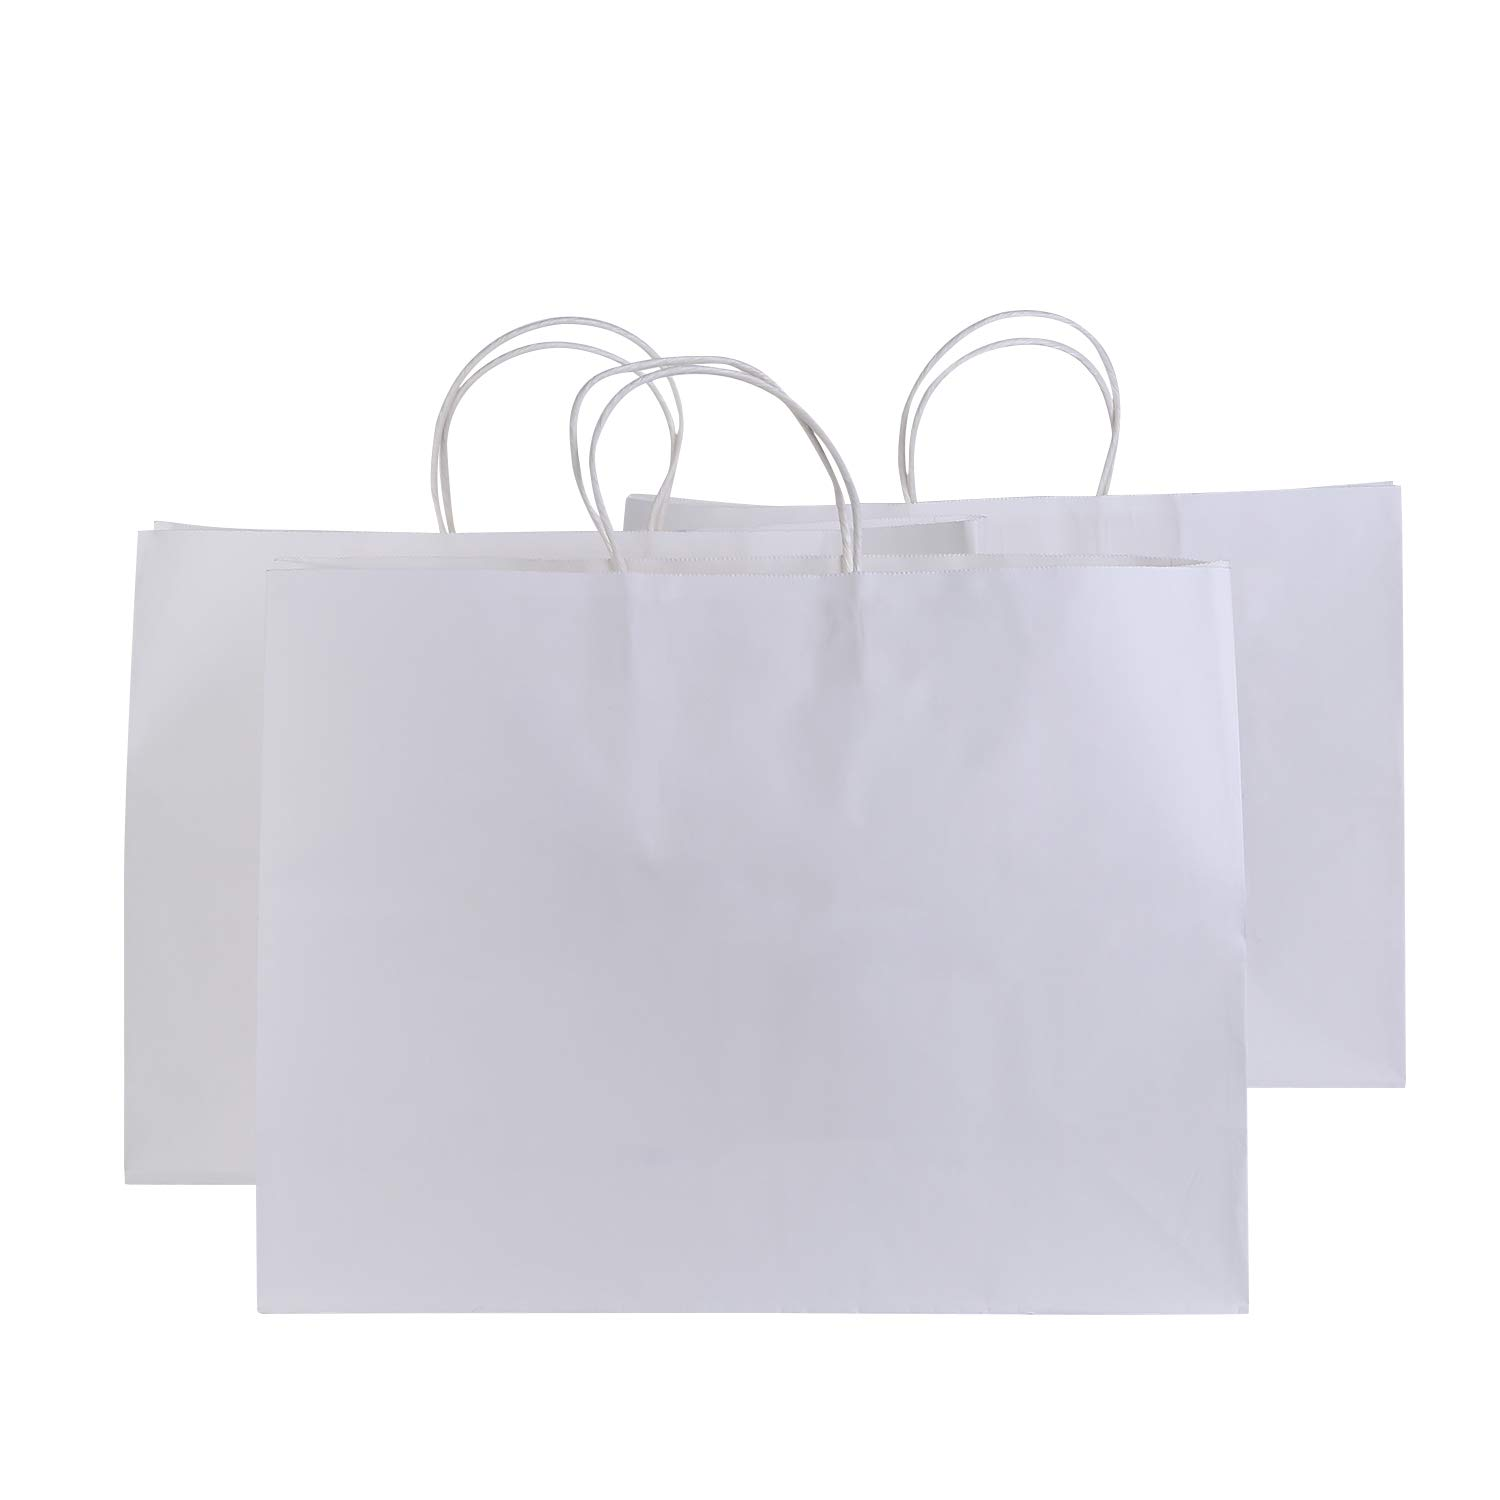 Road 16x6x12 inches 50 Pcs Large Kraft White Paper Bags with Handles, Shopping, Grocery, Mechandise, Party Bags 4336879664